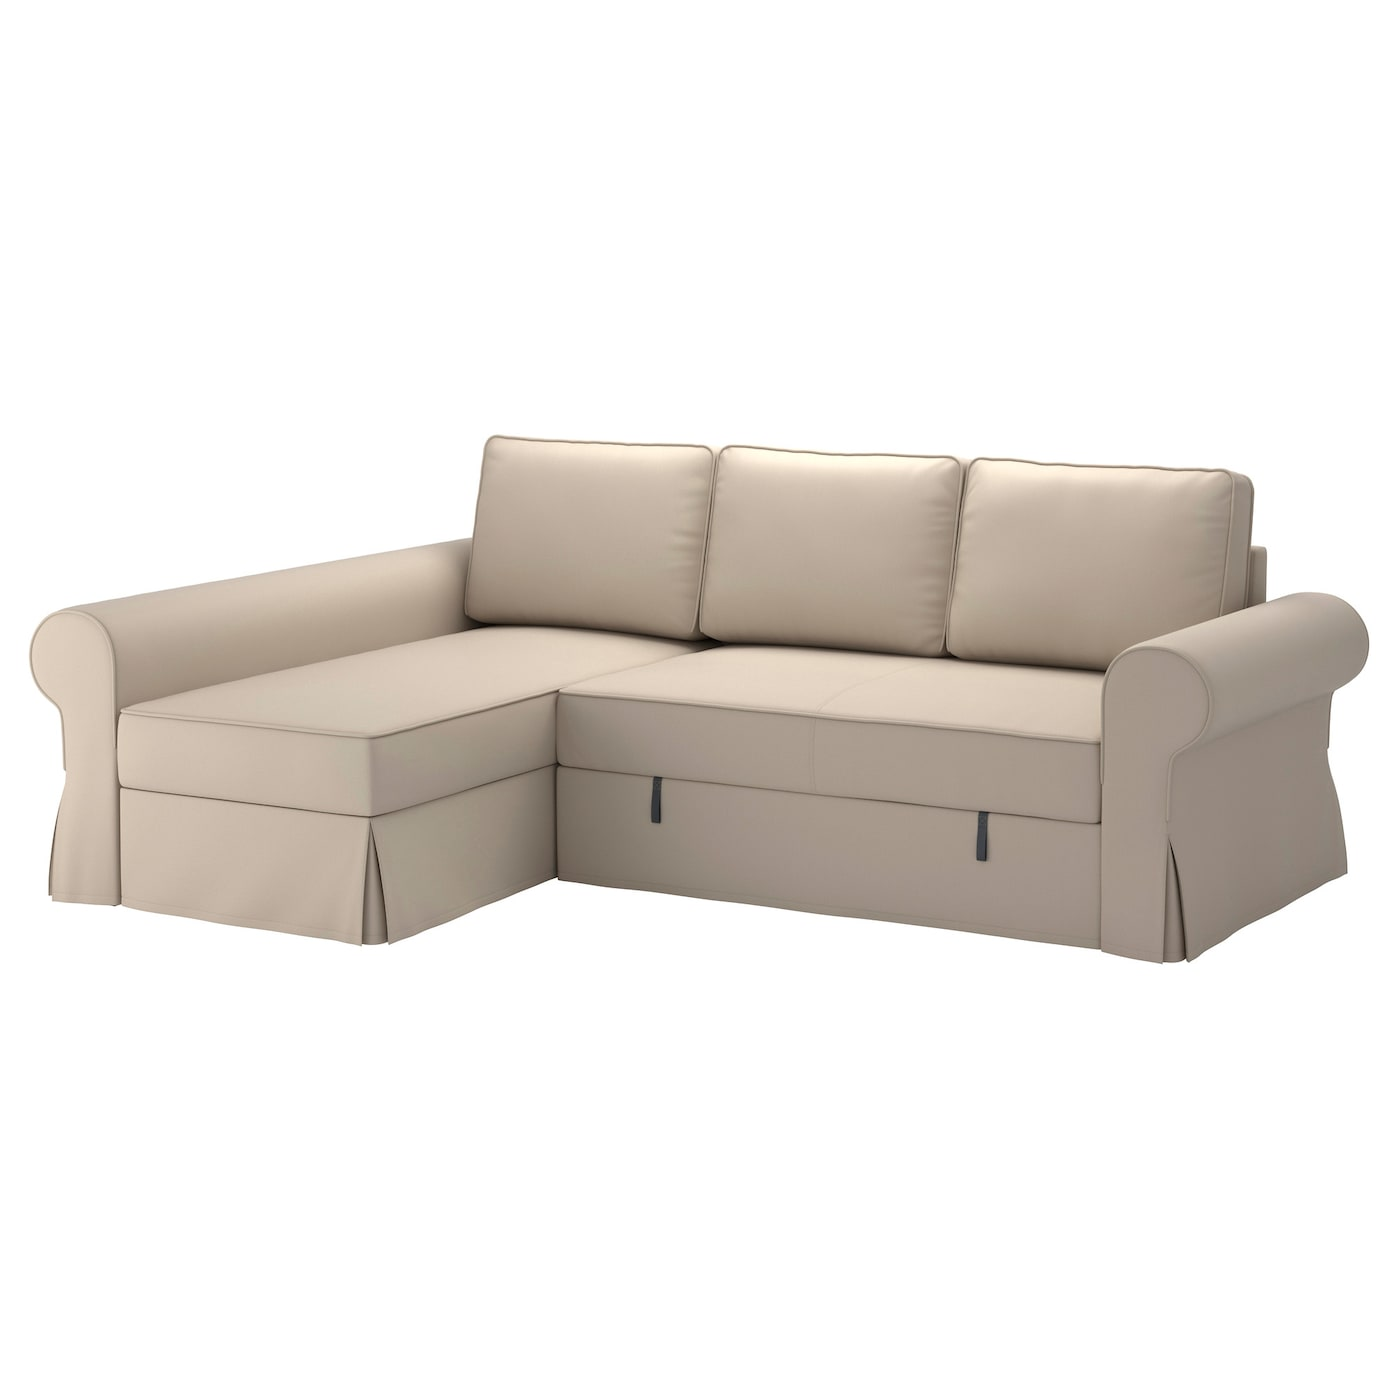 IKEA BACKABRO cover sofa-bed with chaise longue